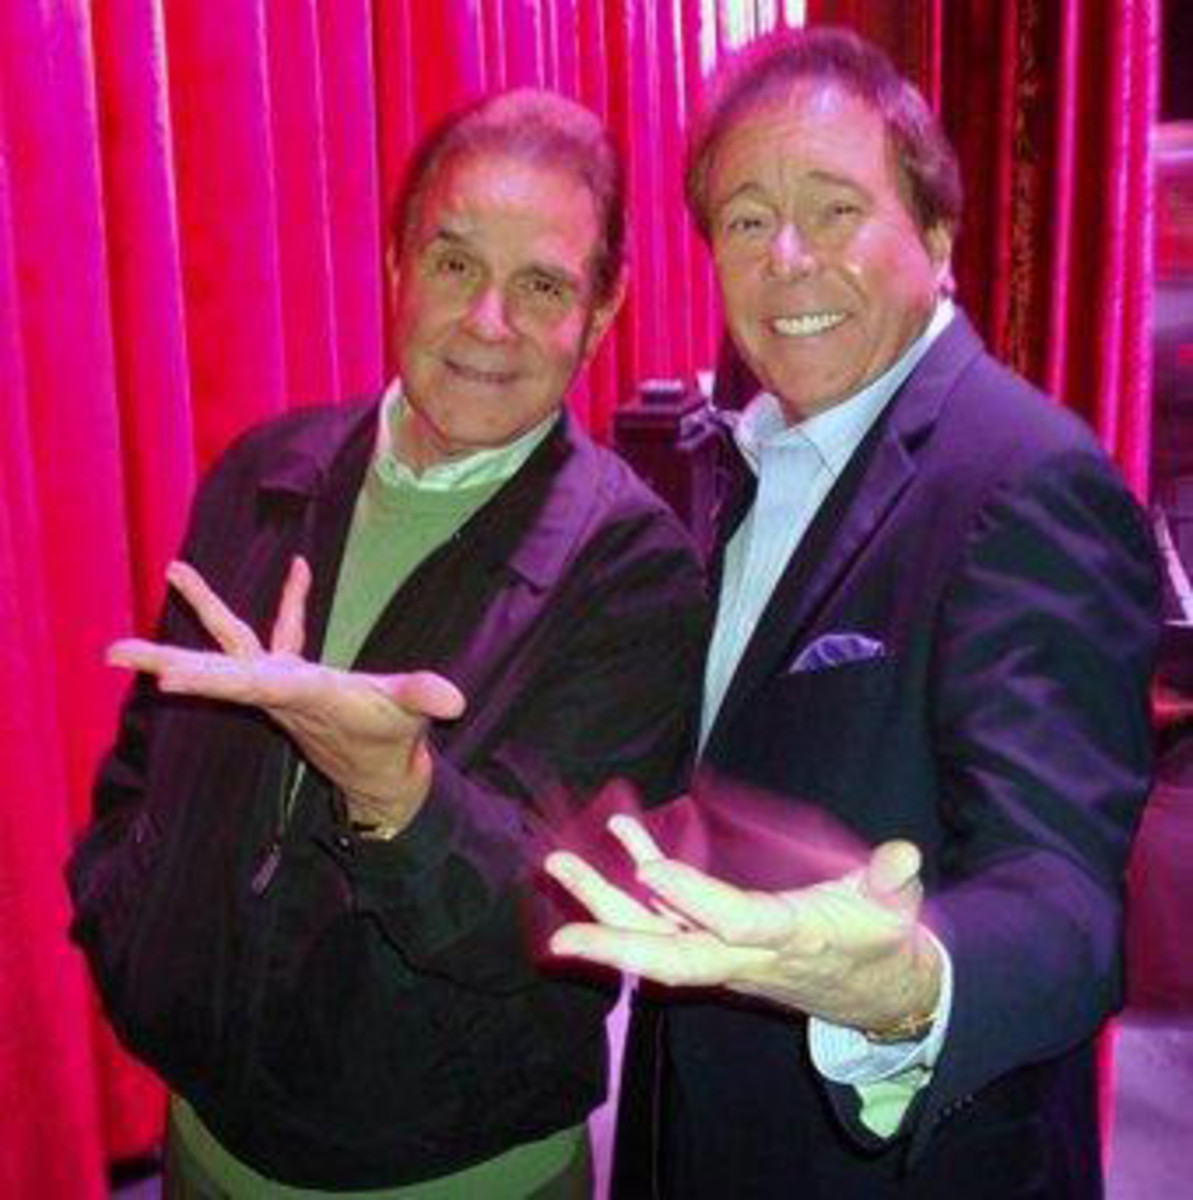 Dennis with legendary impersonator and comedian, Rich Little.